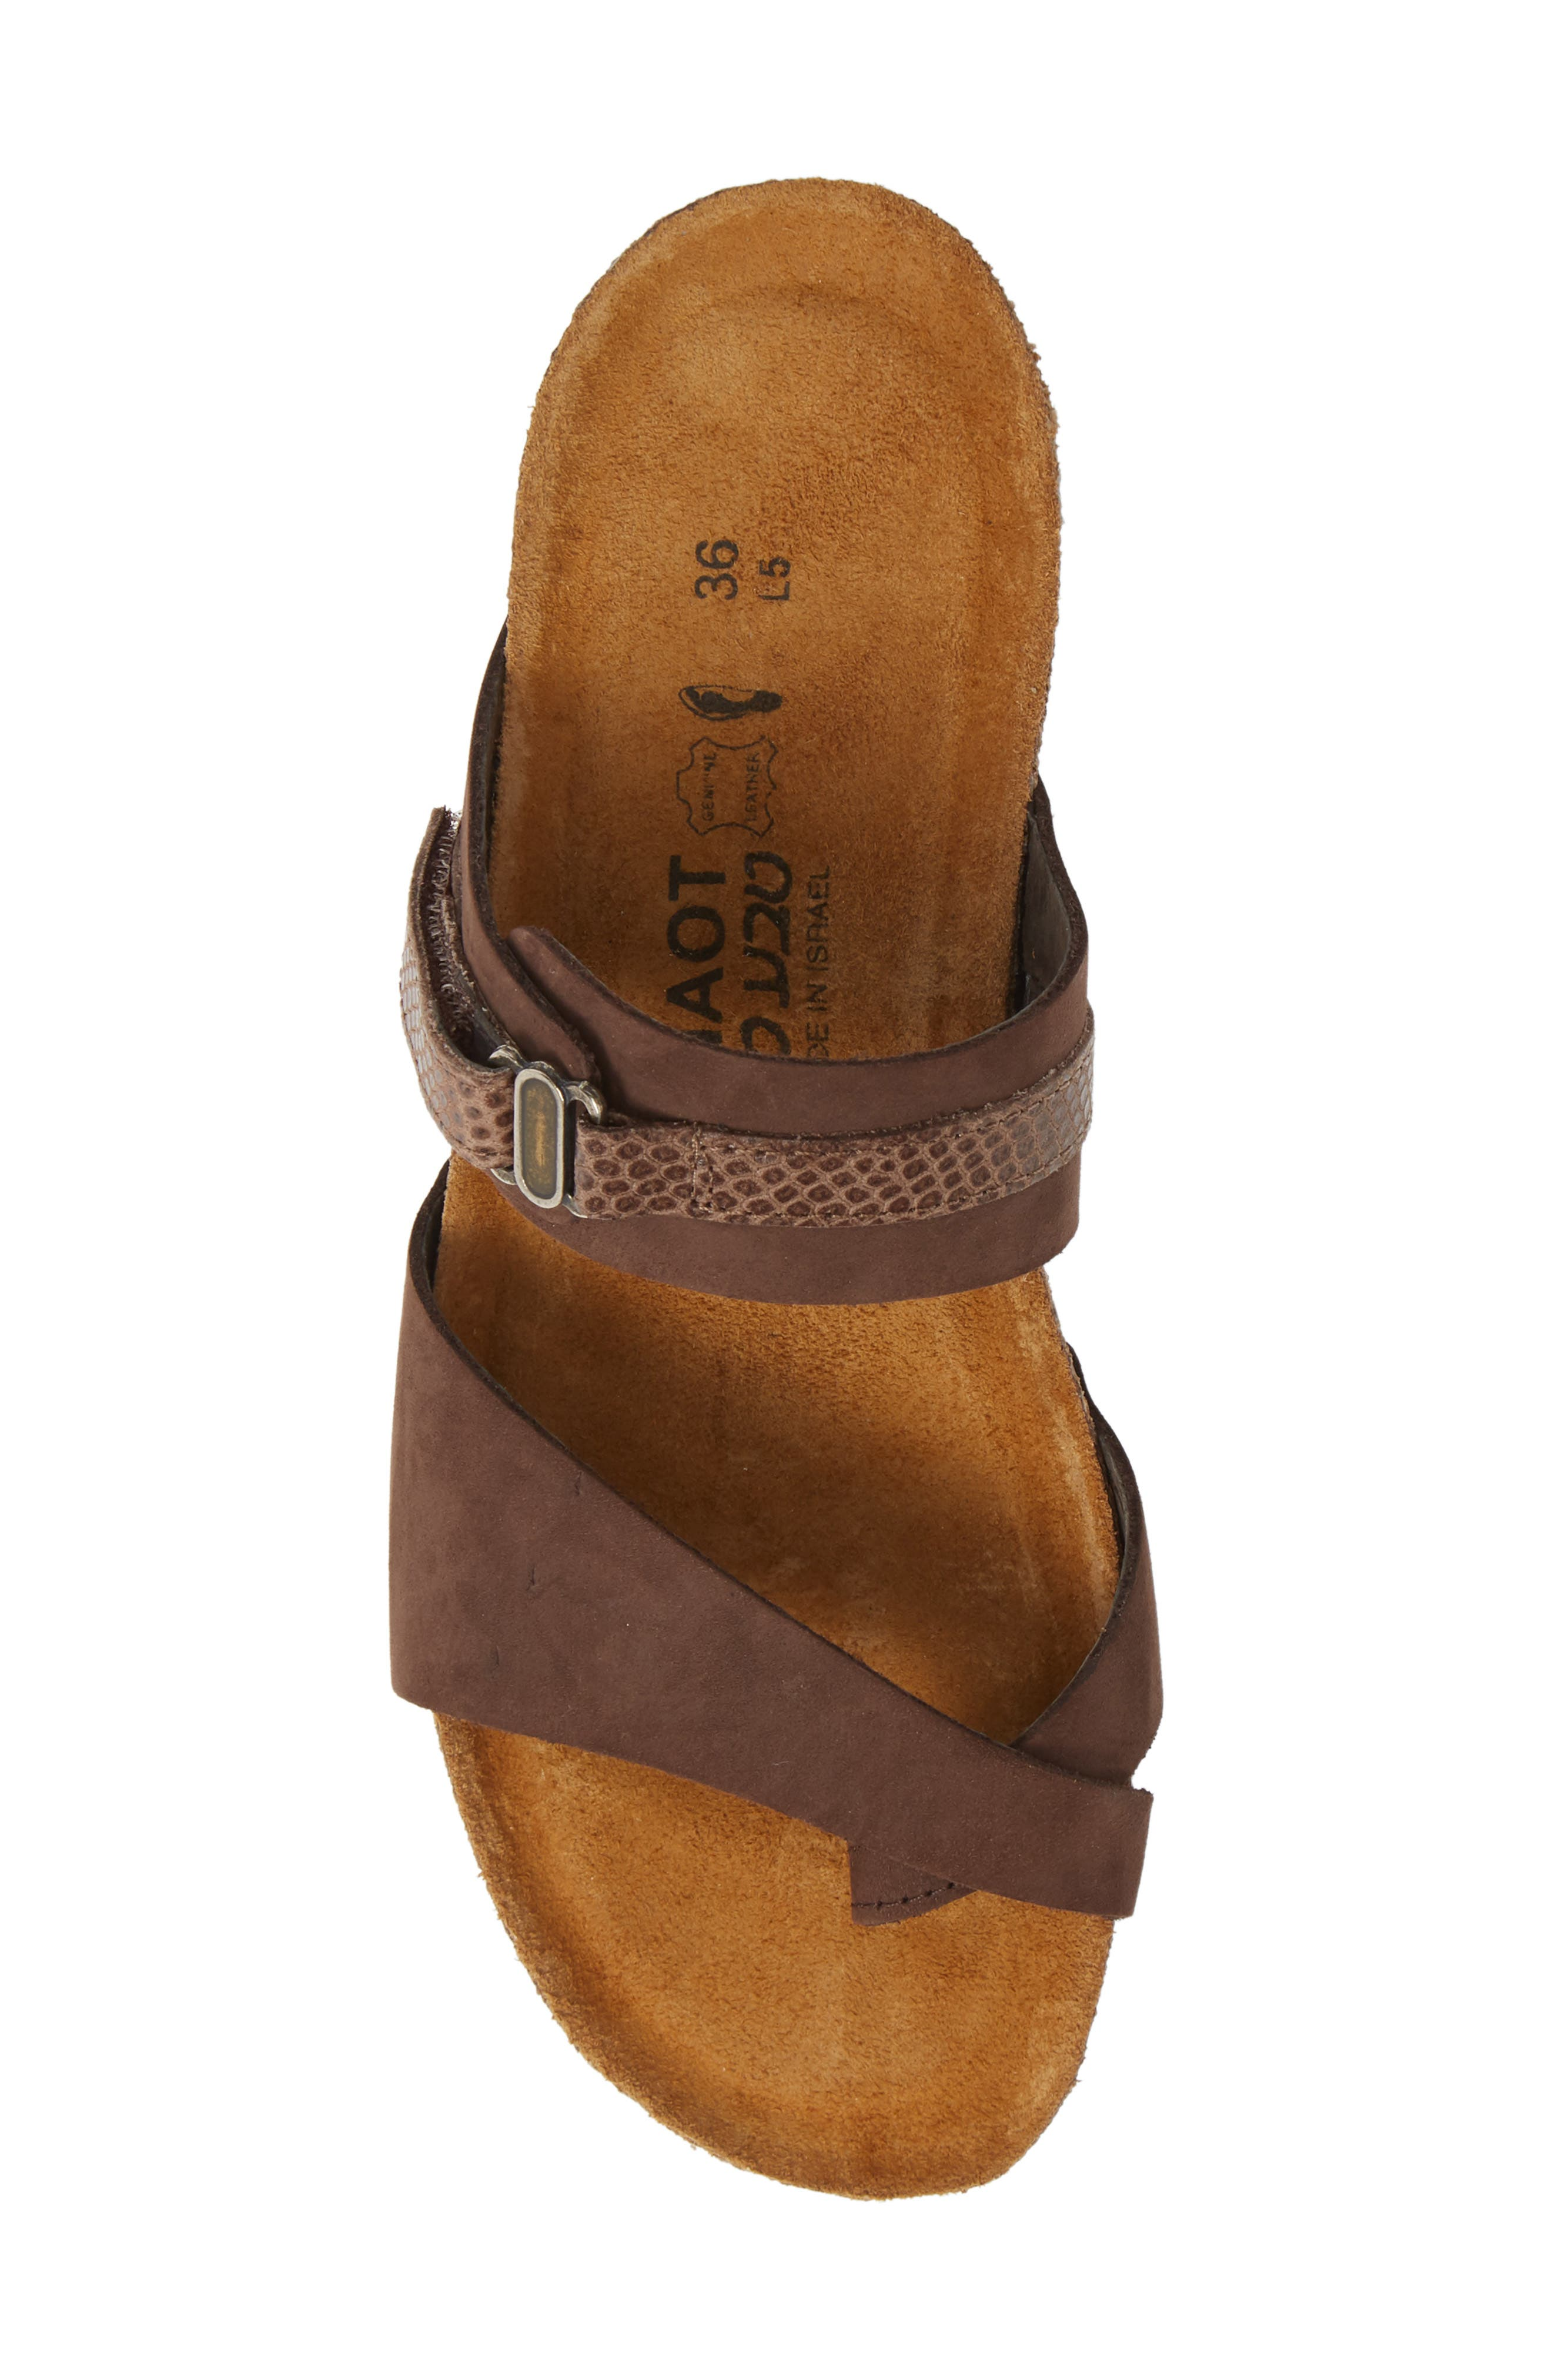 Jessica Sandal,                             Alternate thumbnail 5, color,                             COFFEE BEAN NUBUCK LEATHER